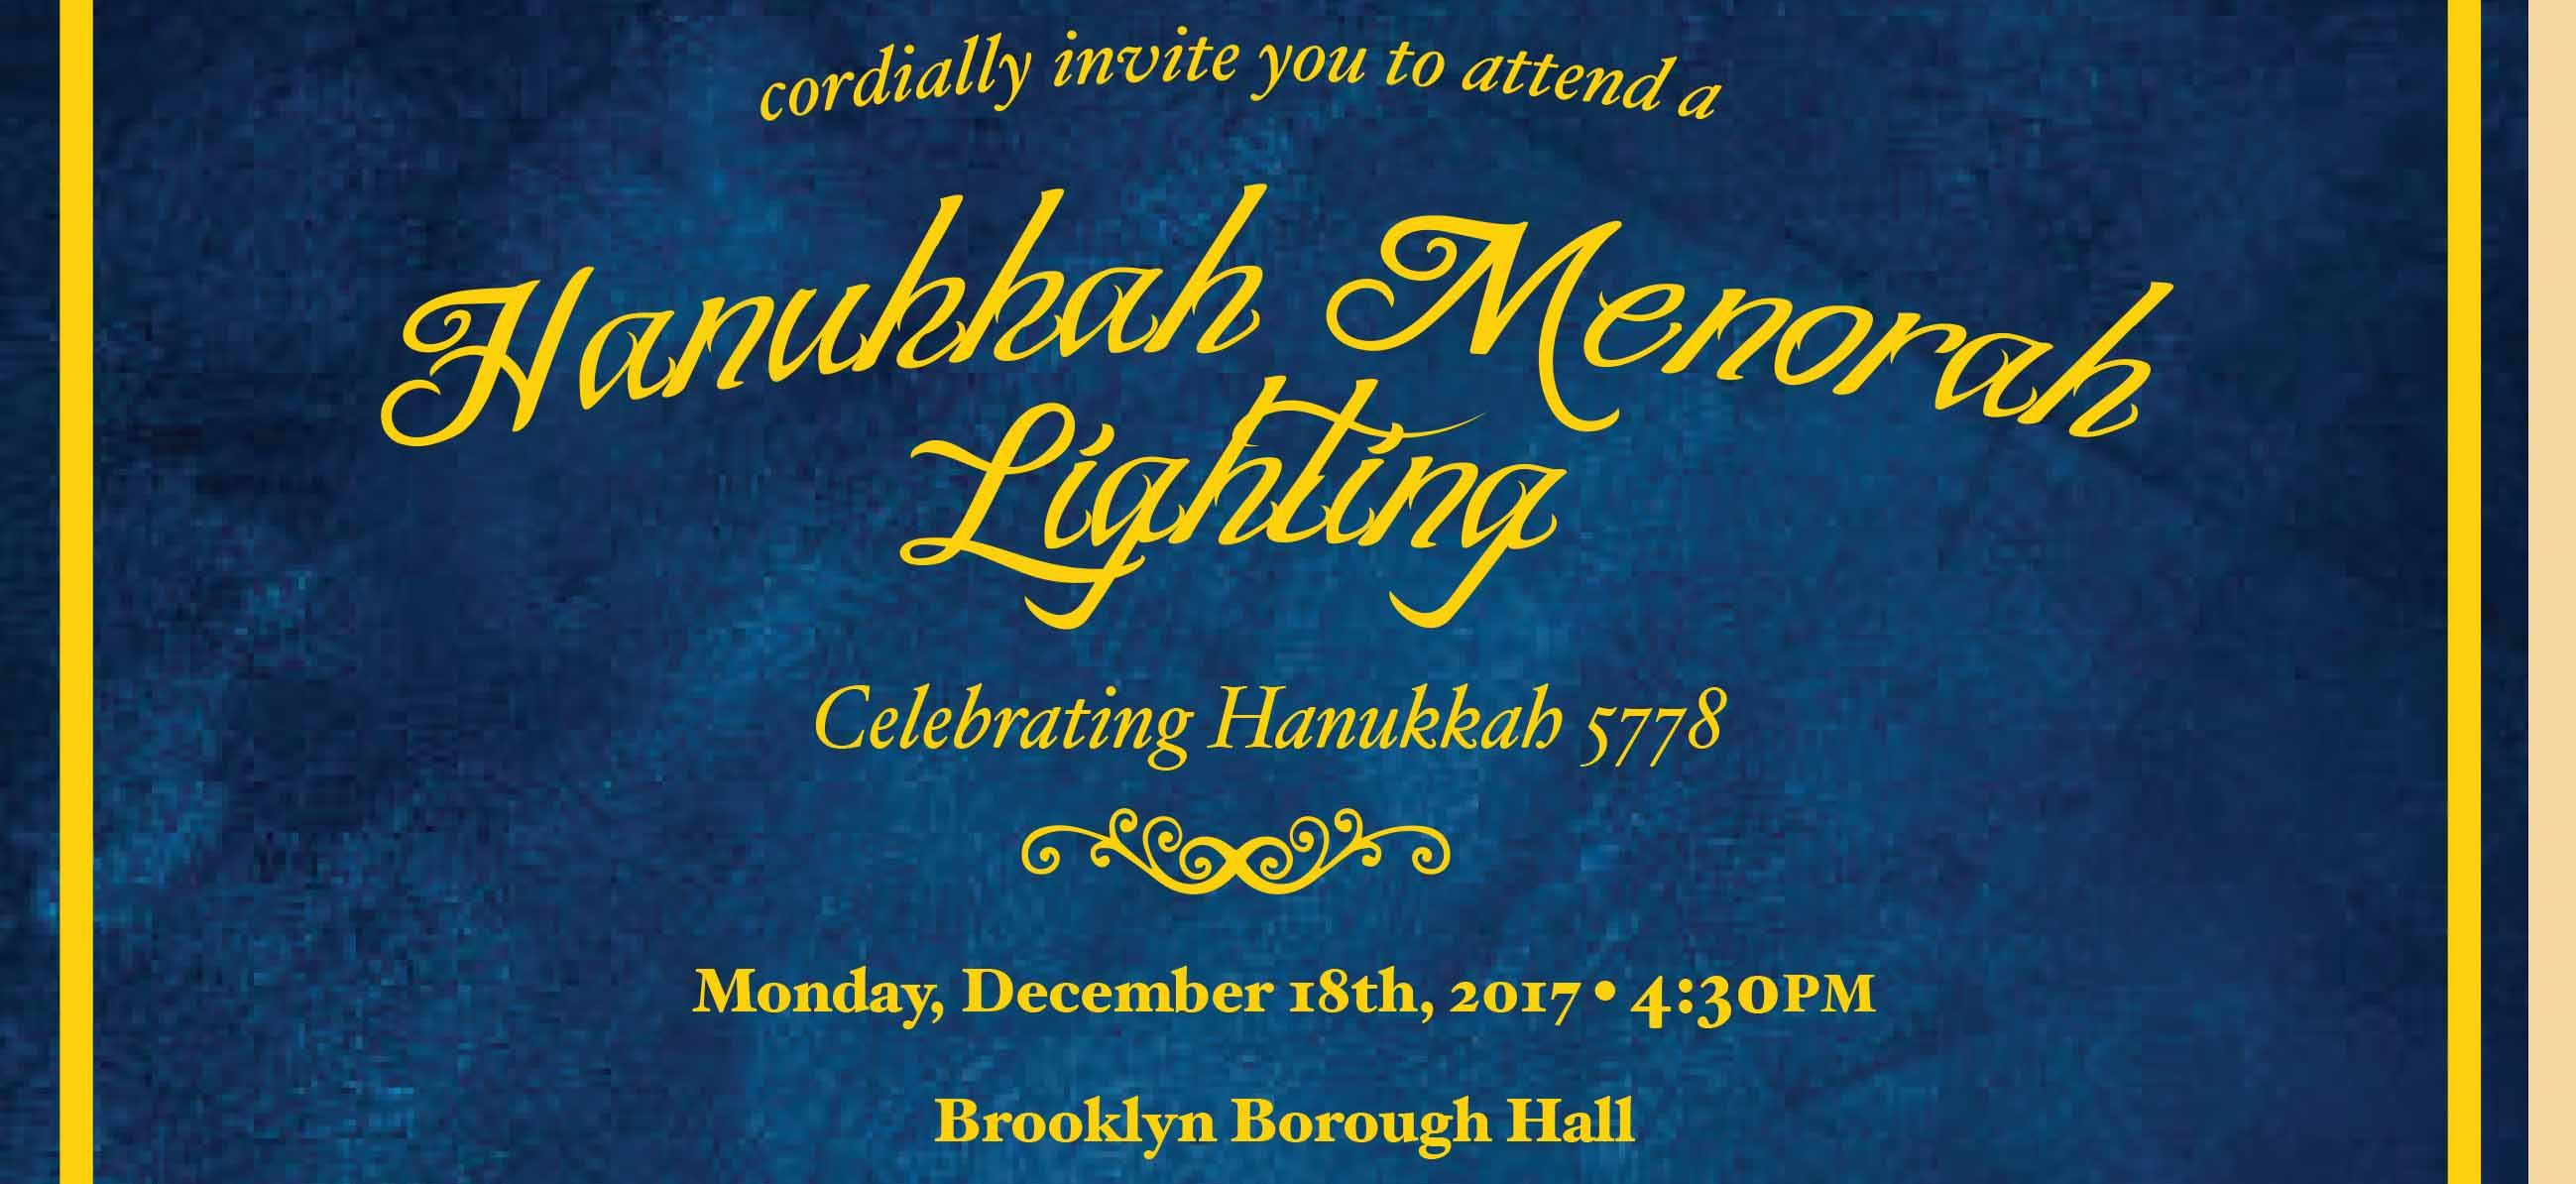 Menorah Lighting at Brooklyn Boro Hall today!  sc 1 st  A Journey through NYC religions & Menorah Lighting at Brooklyn Boro Hall today! u203a A Journey through ... azcodes.com